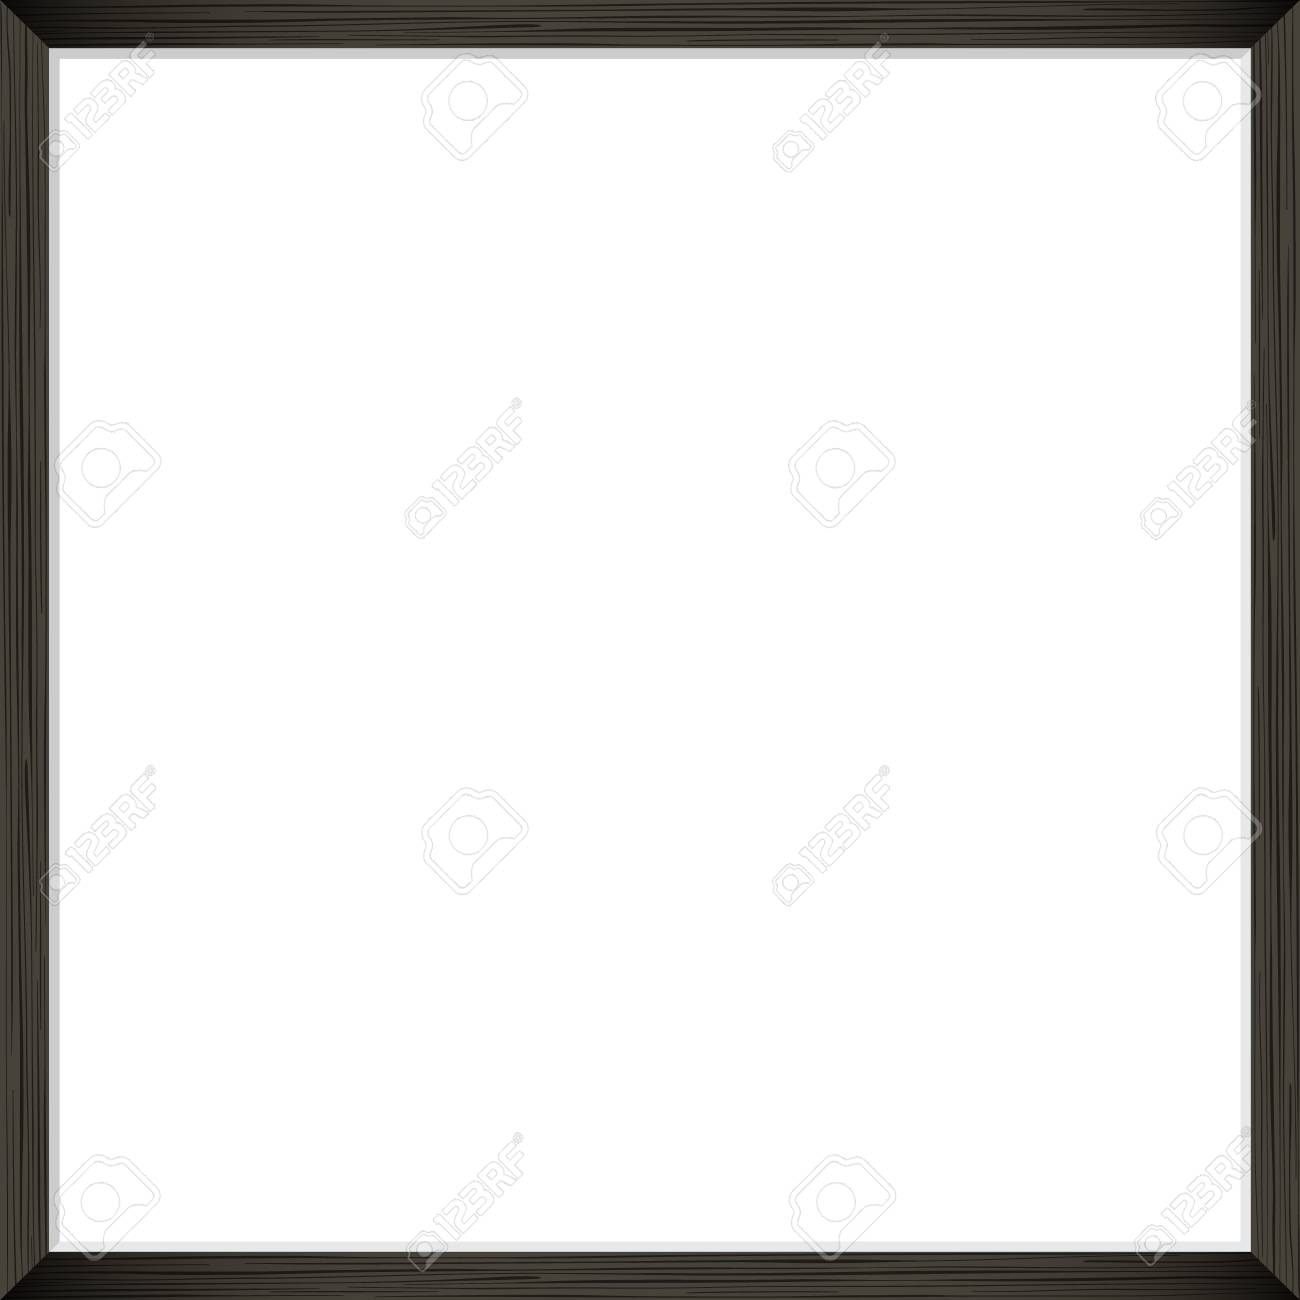 Square Blank picture frame template. Realistic black frame with shadow on white for photo or poster. - 101976326